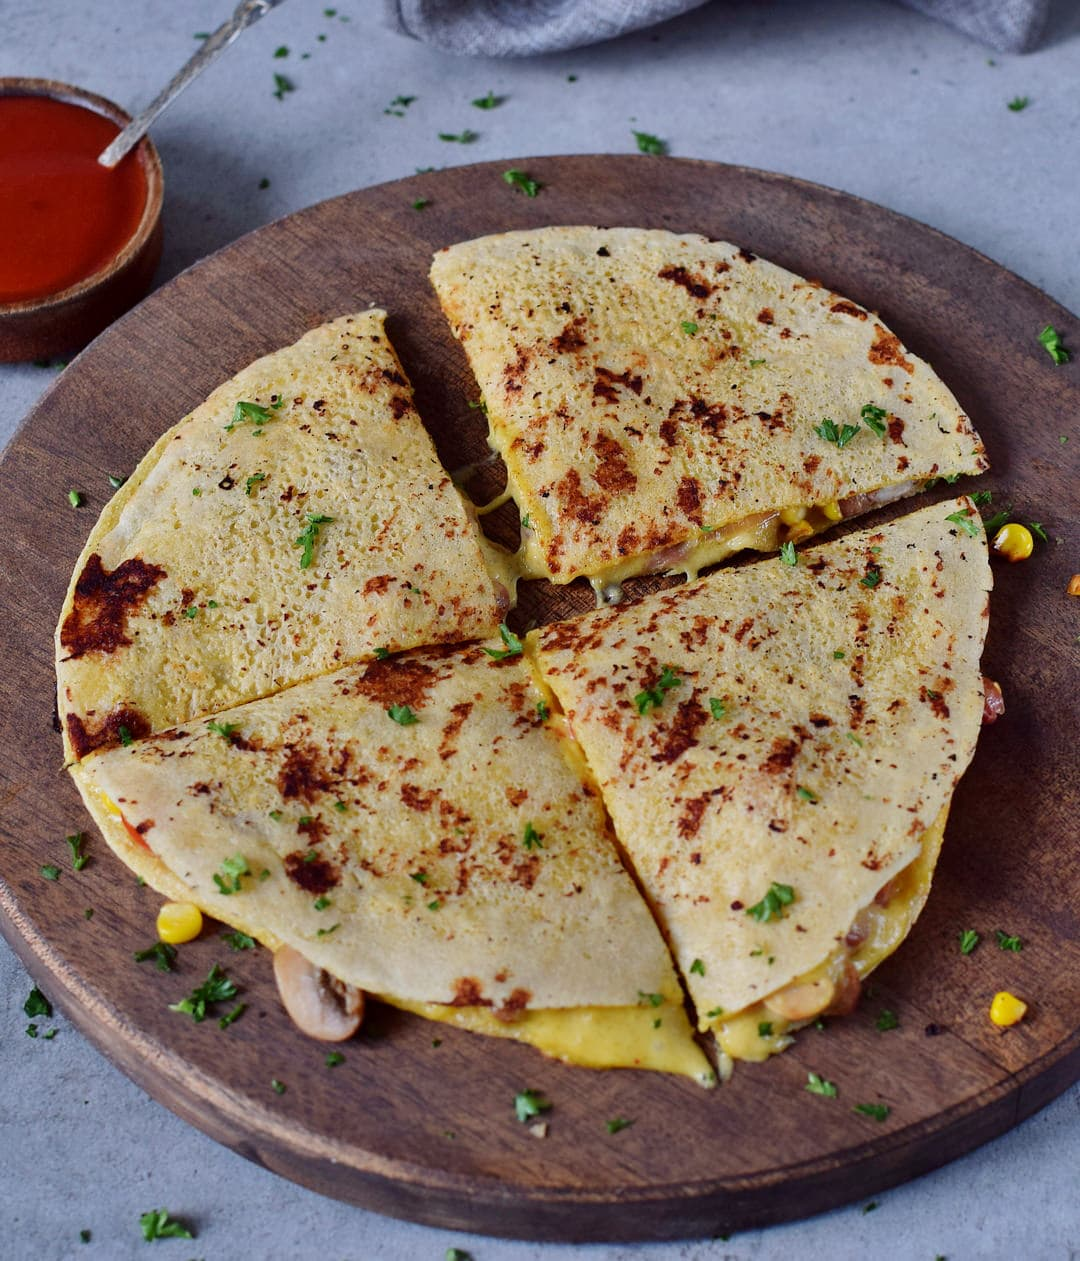 vegan quesadillas filled with veggies and vegan cheese sauce gluten-free tortillas